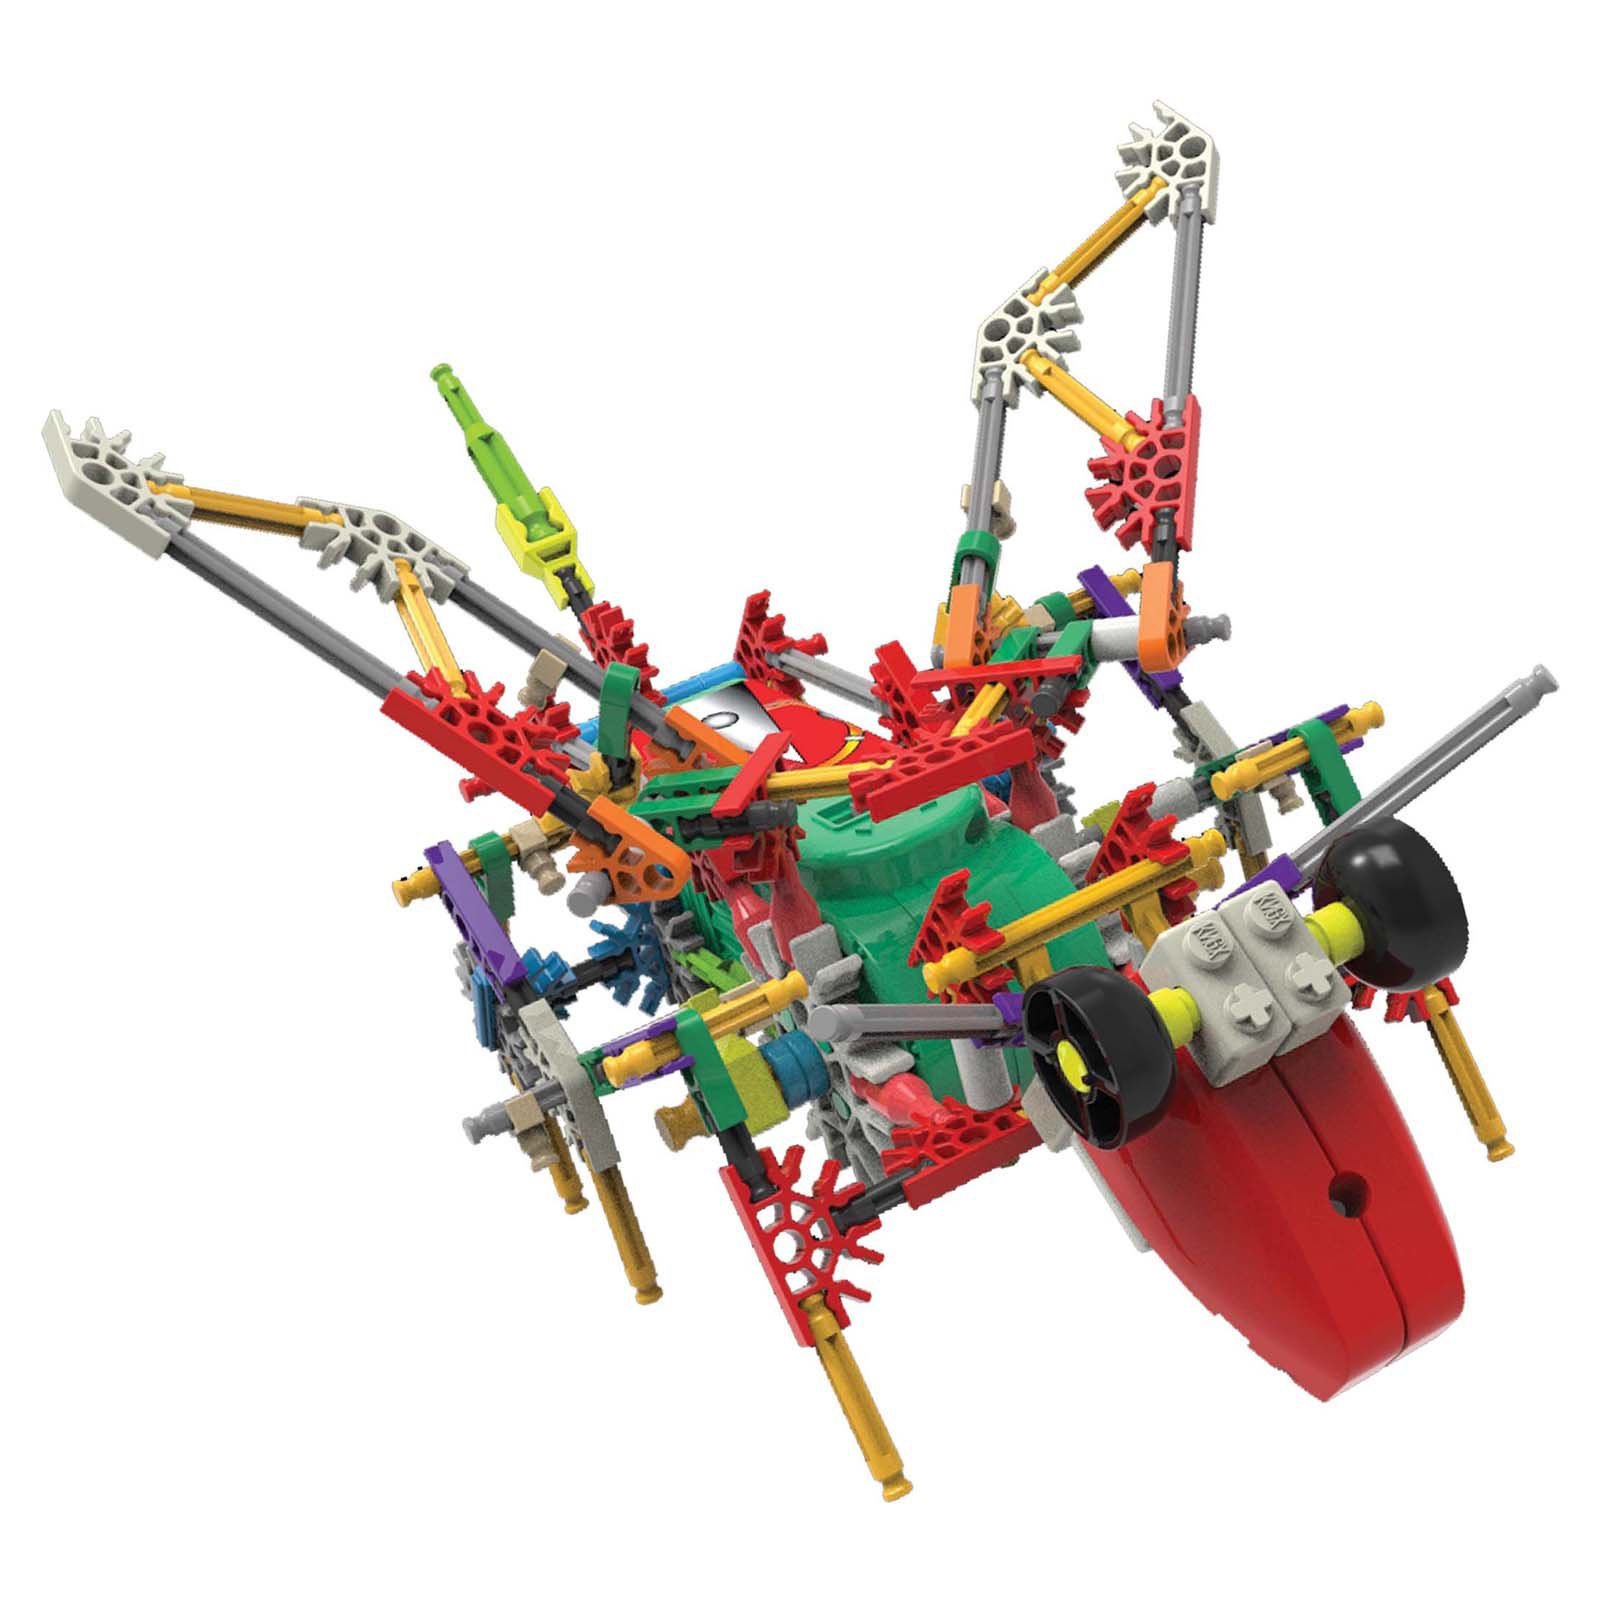 Knex Robo-Sting Building Set by K'NEX